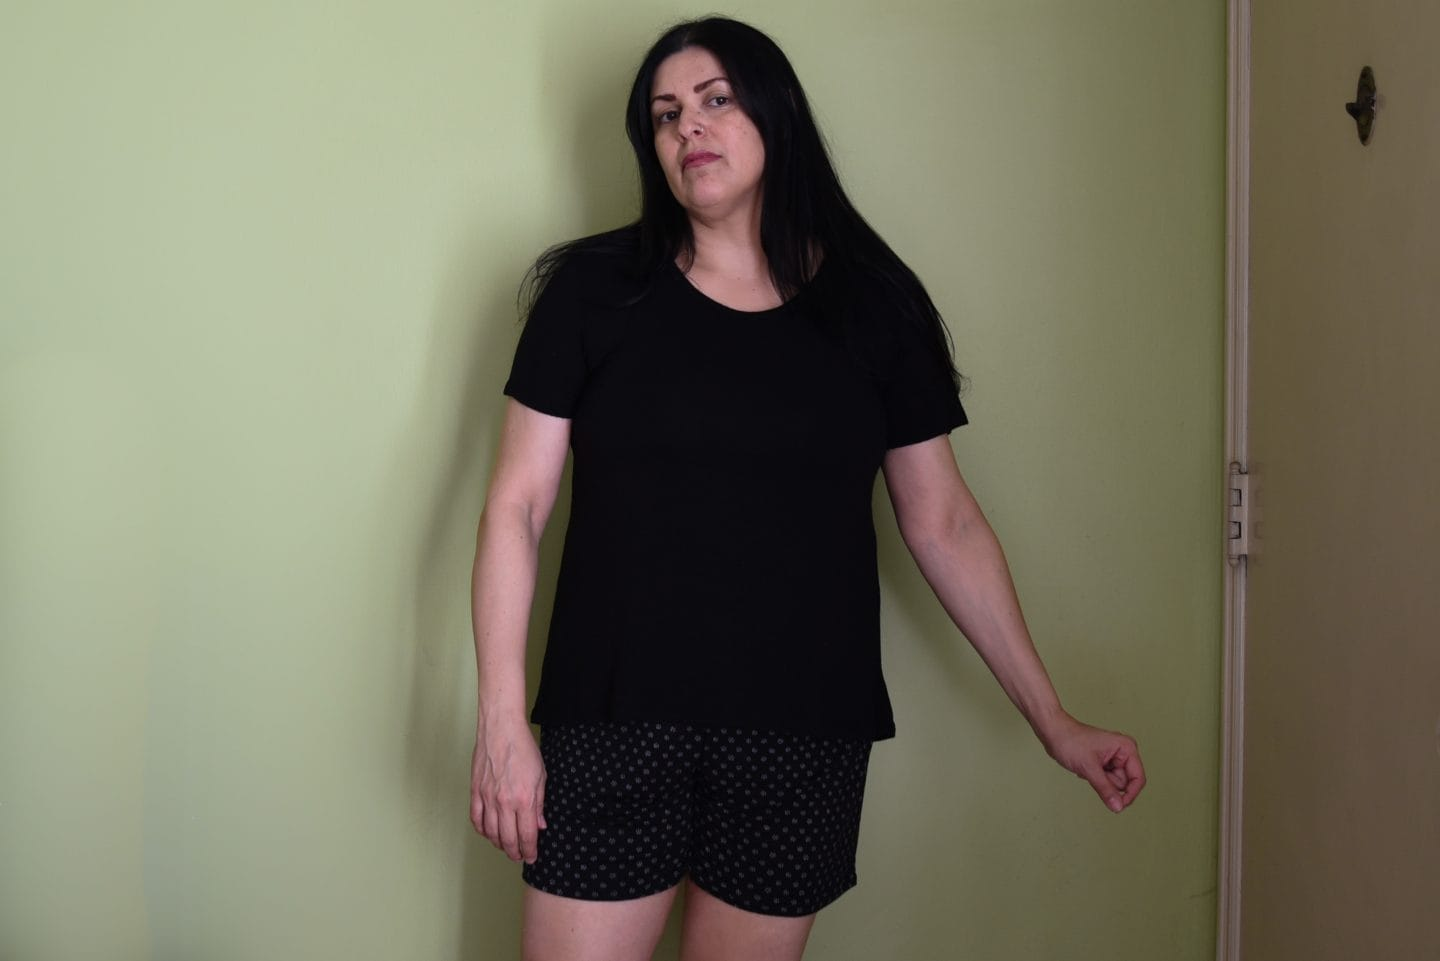 Image of a woman with long black hair standing in front of a green wall wearing a black T-shirt and black shorts with white polka dots